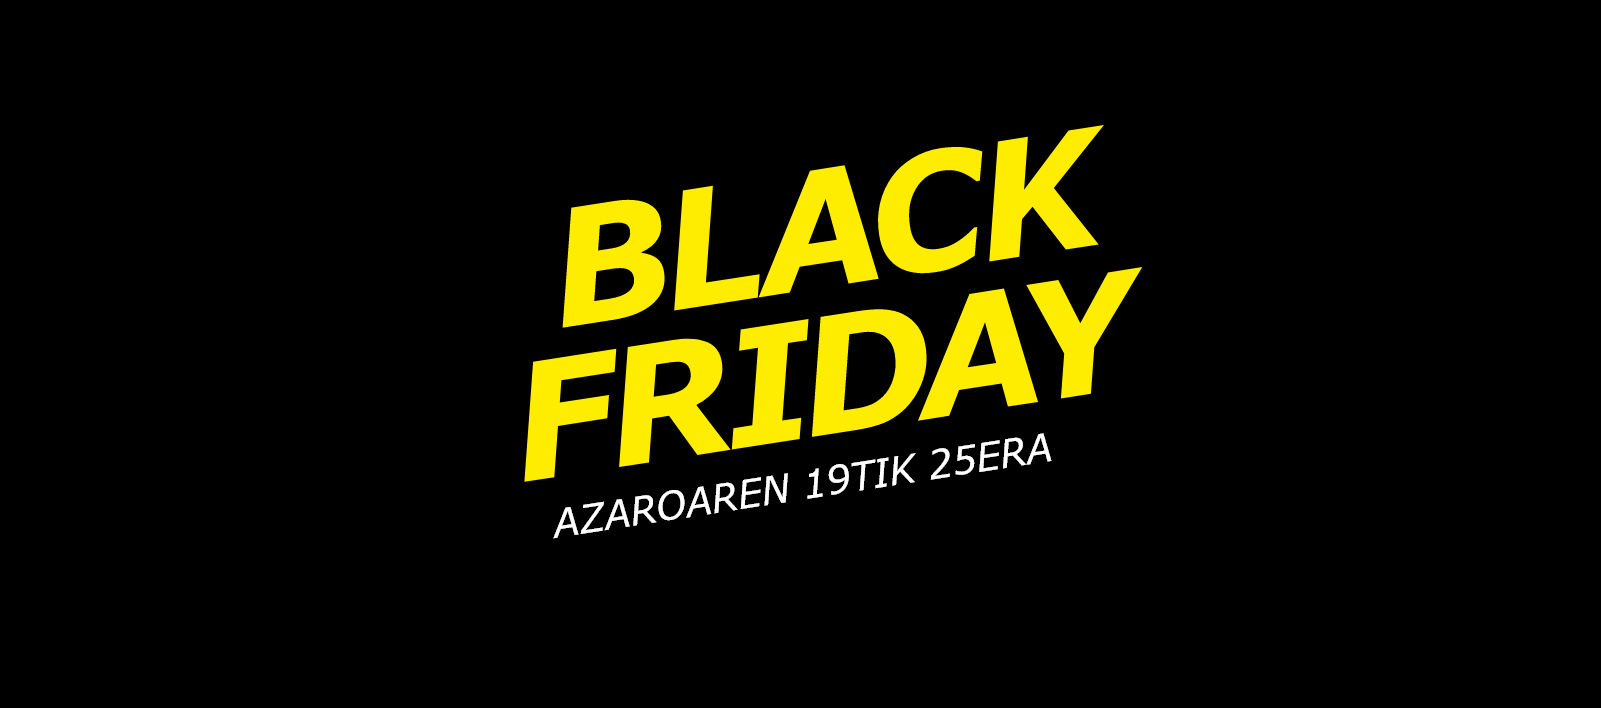 Black Friday kanpaina IKEA